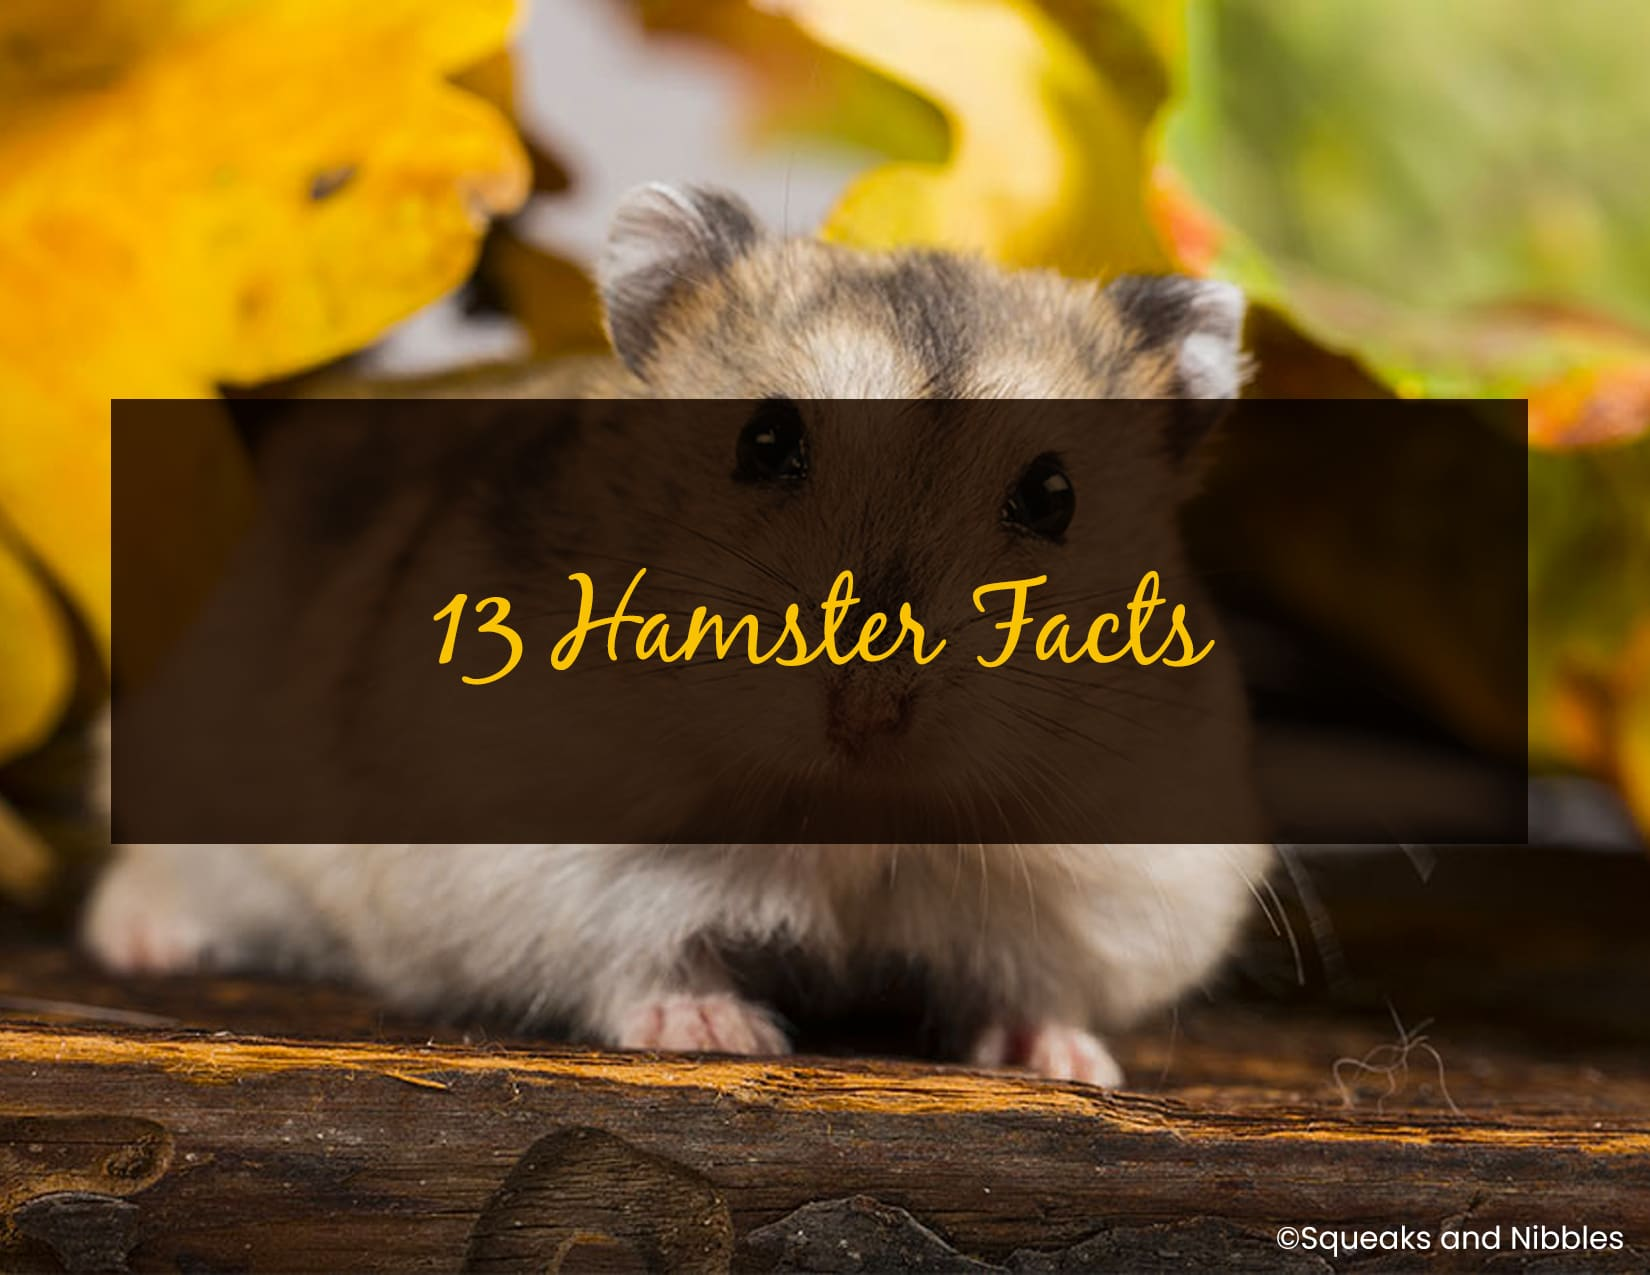 13 Hamster Facts